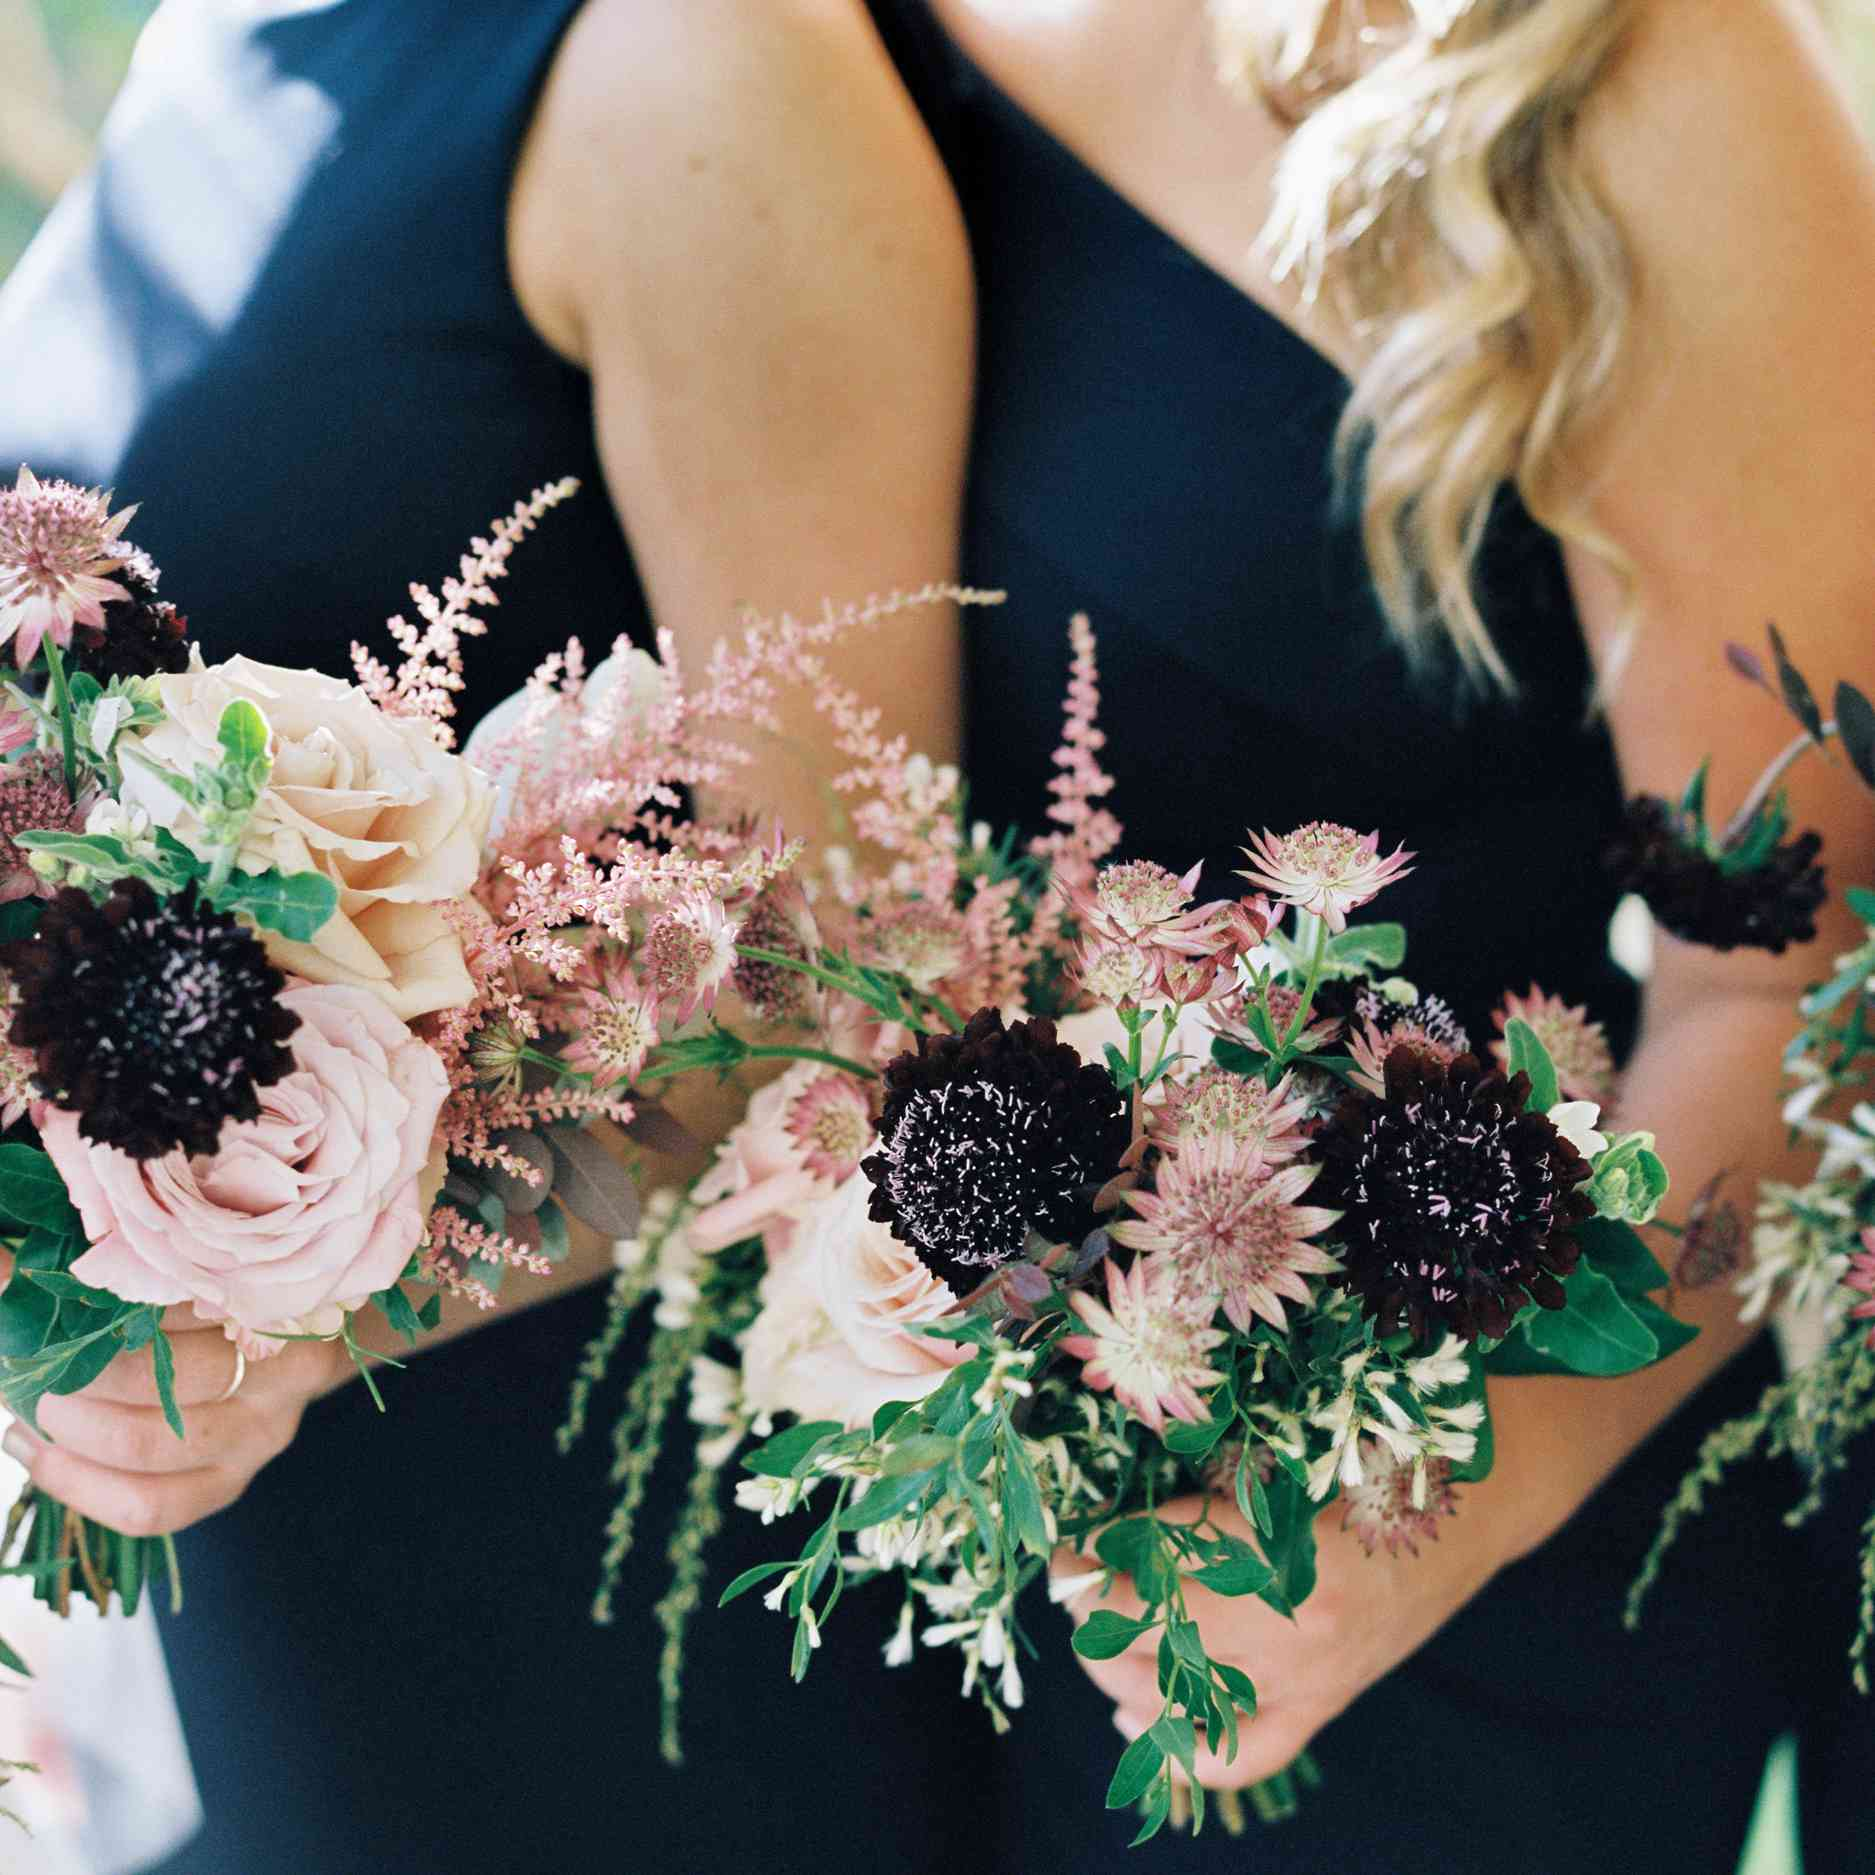 Bridal bouquets of David Austin roses, garden roses, astrantia, astilbe, and scabiosa